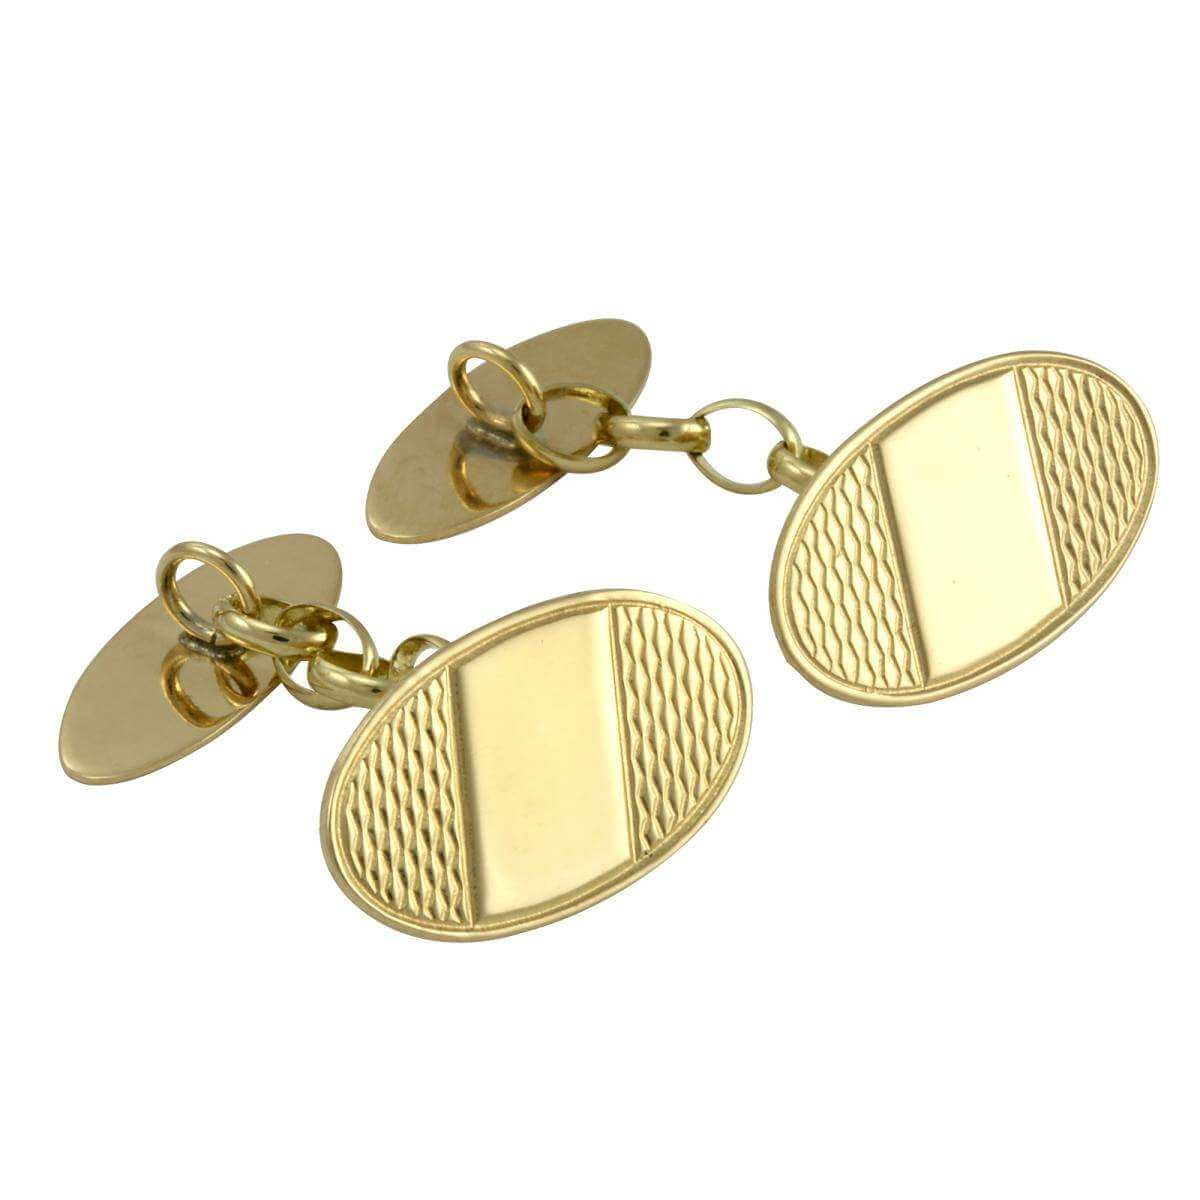 9ct Gold Patterned Oval Cufflinks